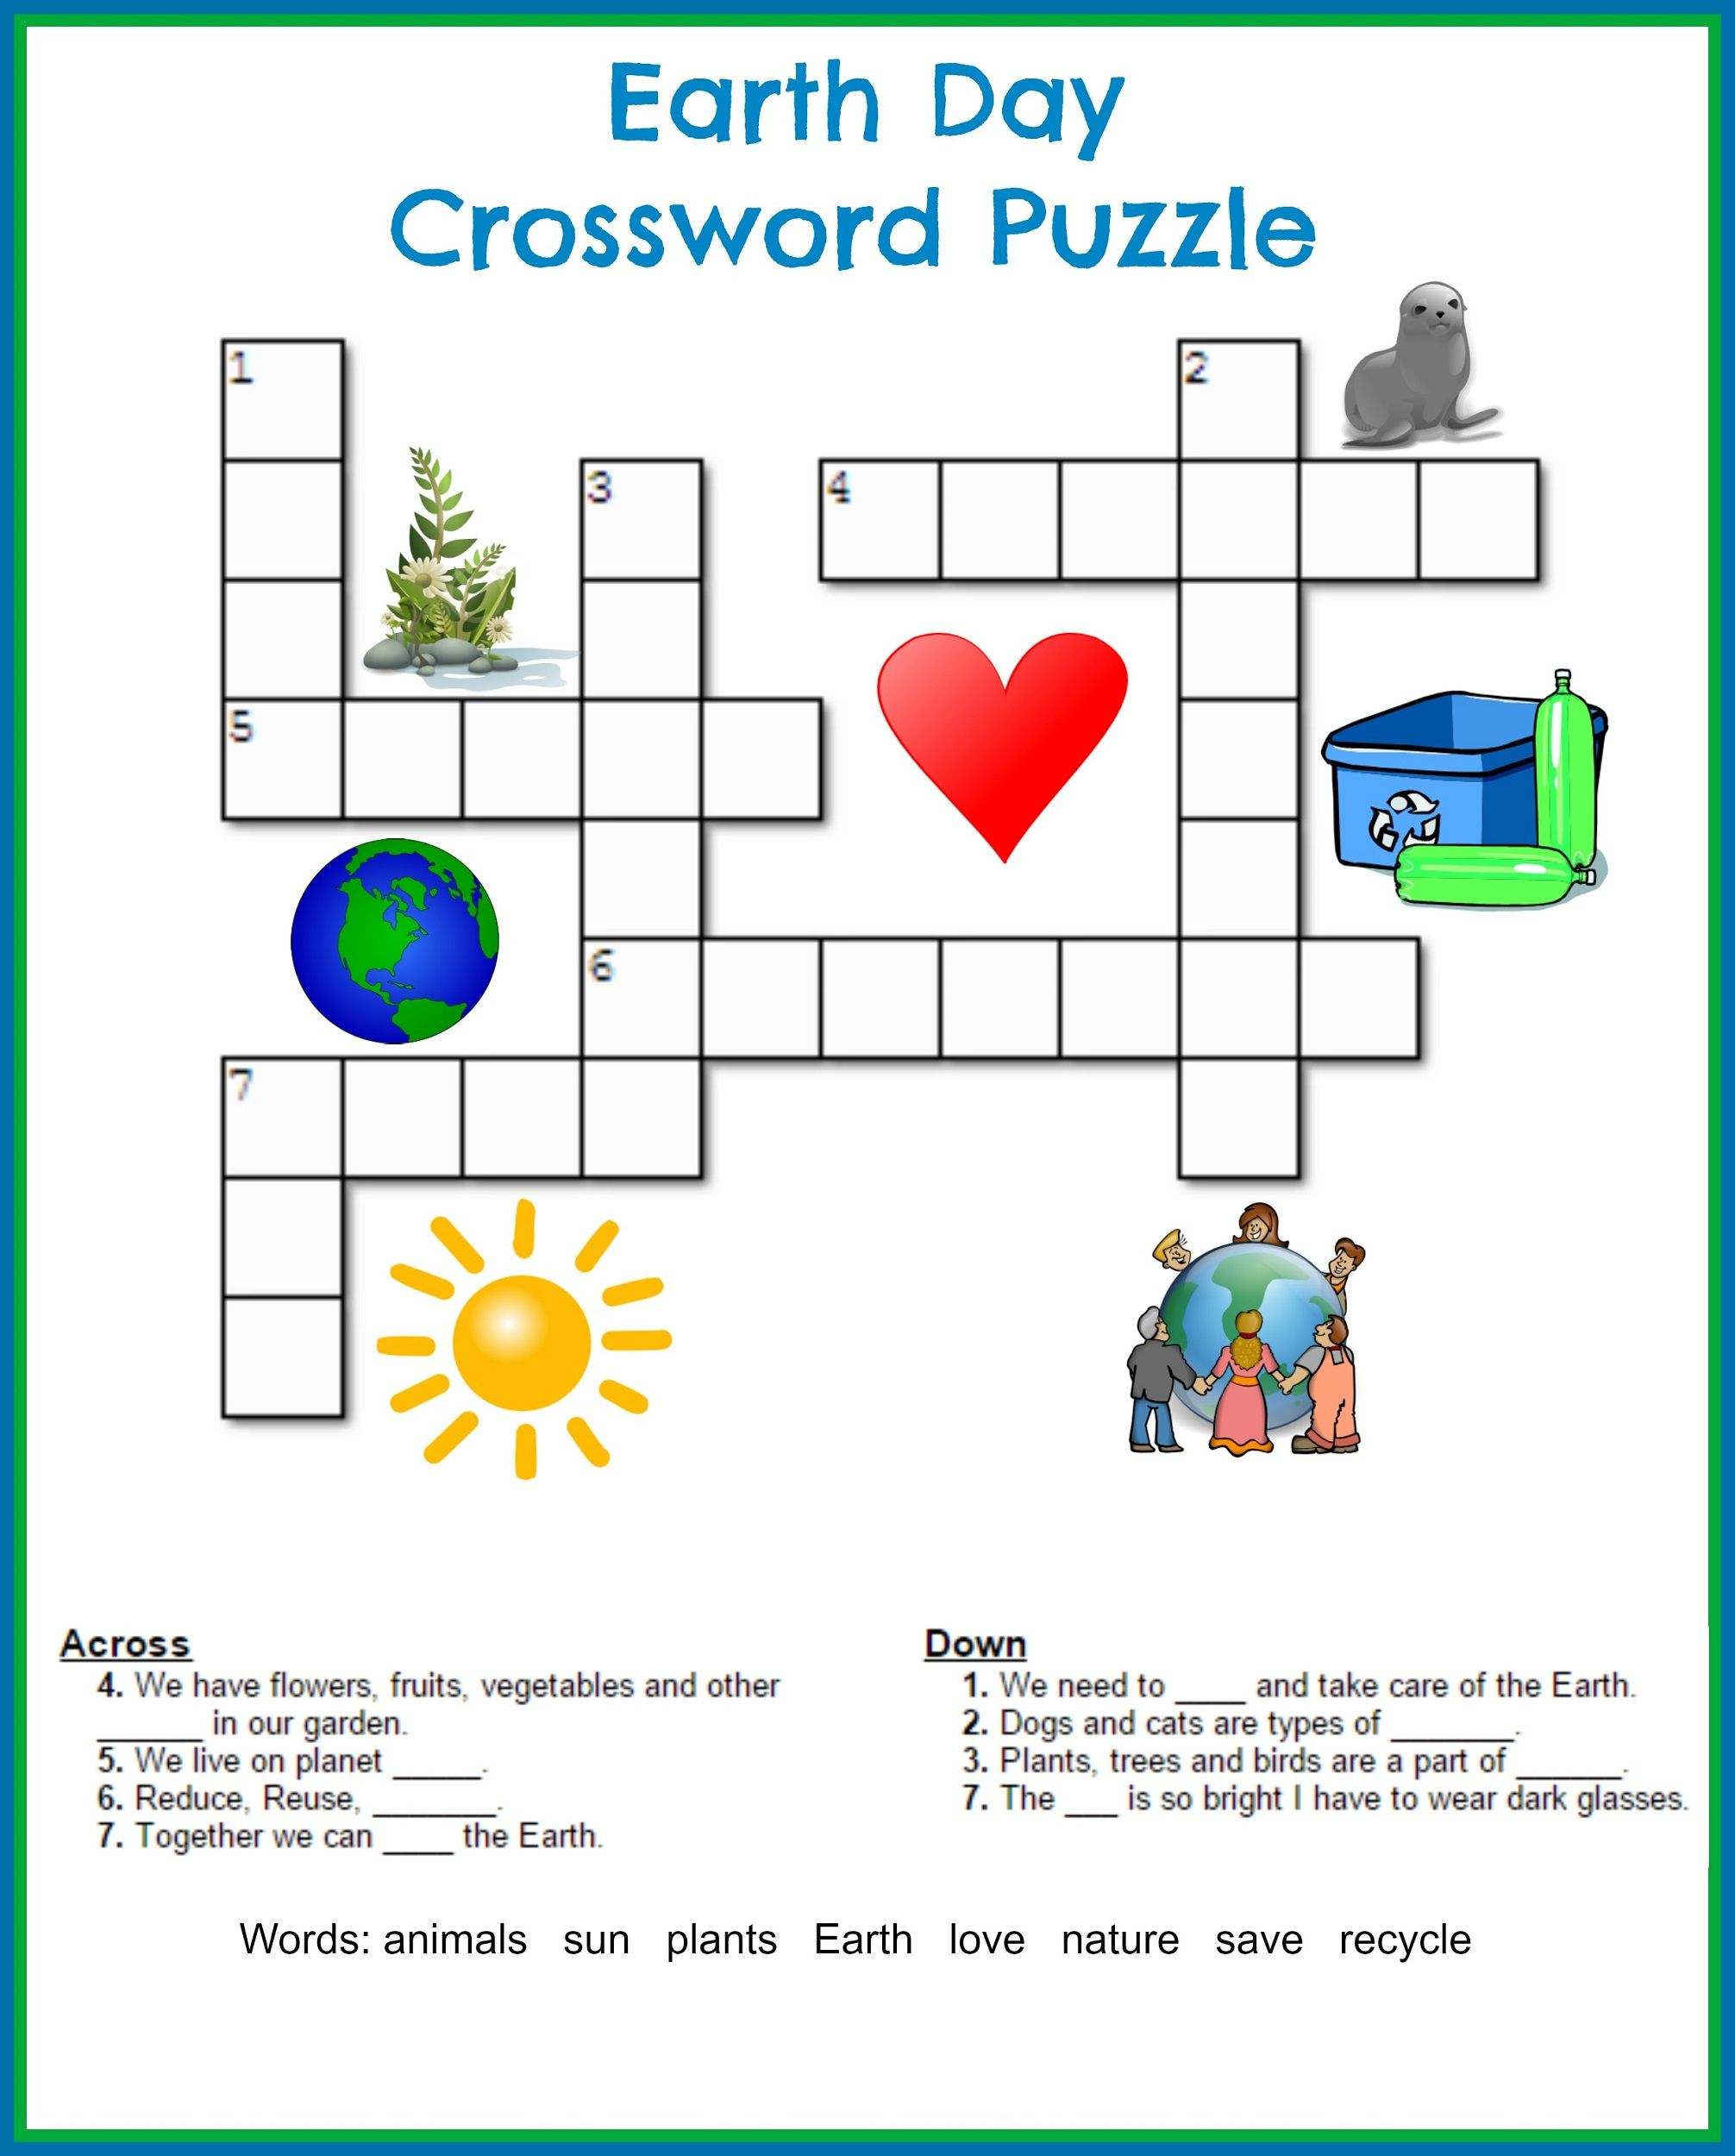 Printable Crossword Puzzles Kids | Crossword Puzzles On Earth - Printable Sun Crossword